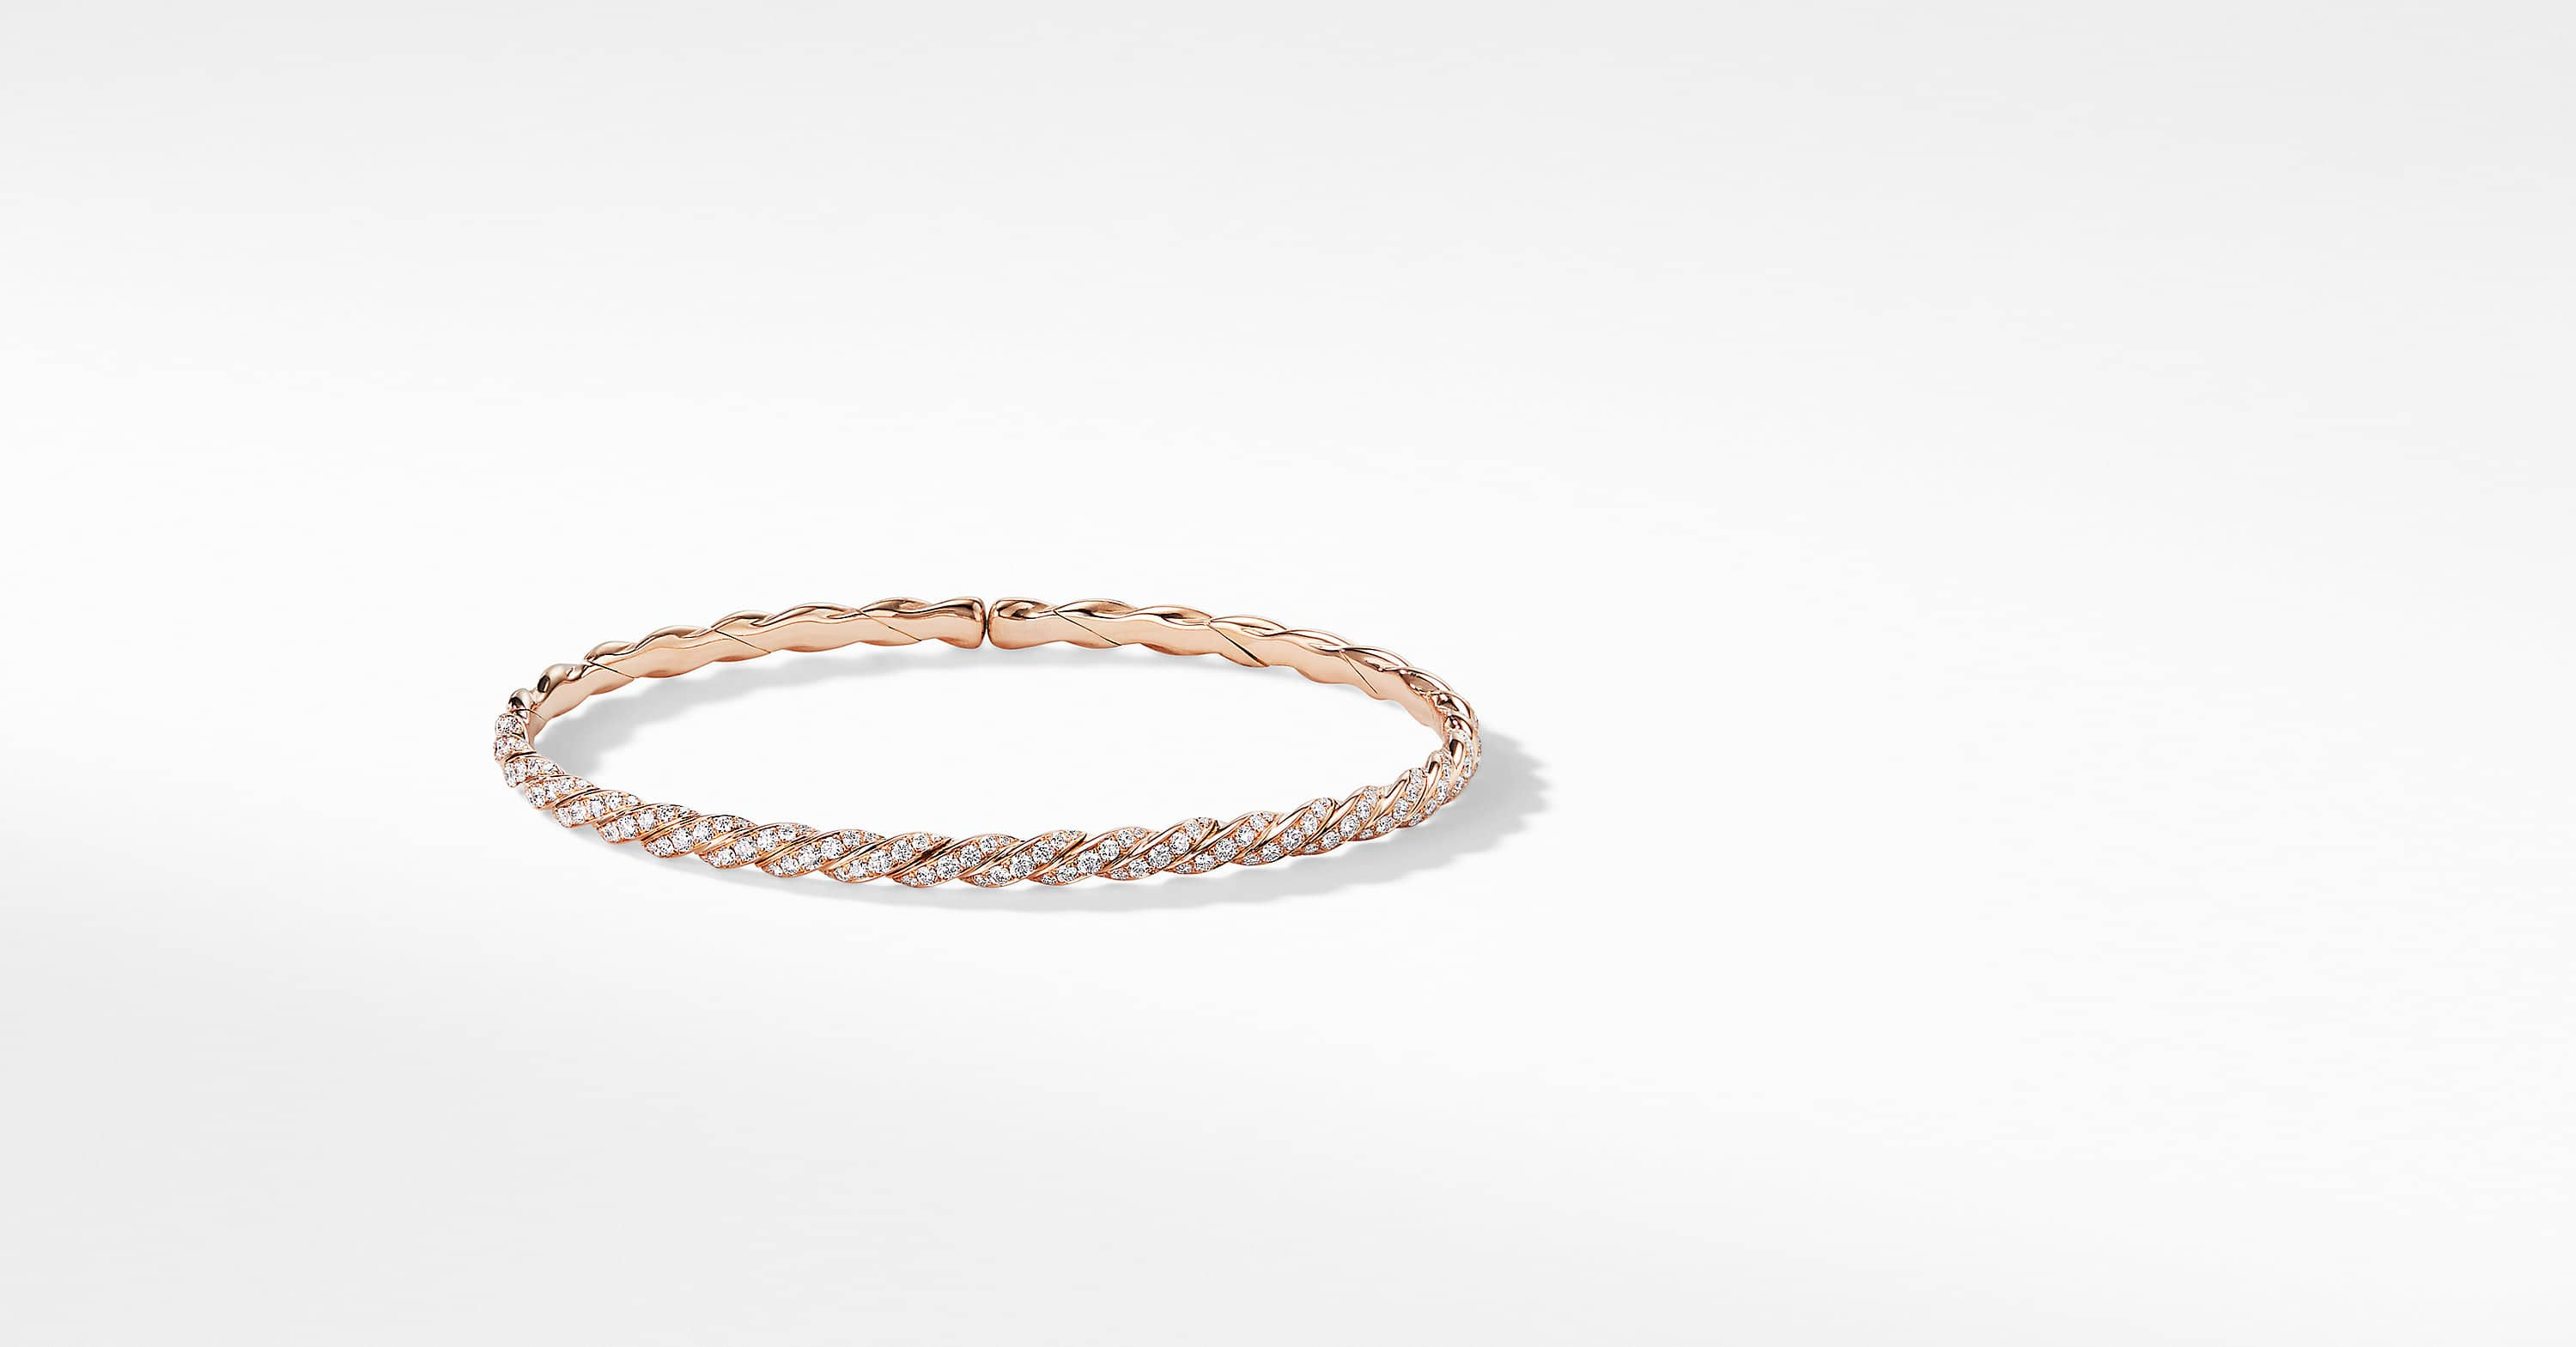 Bracelet Pavéflex à un rang en or rose 18K et diamants